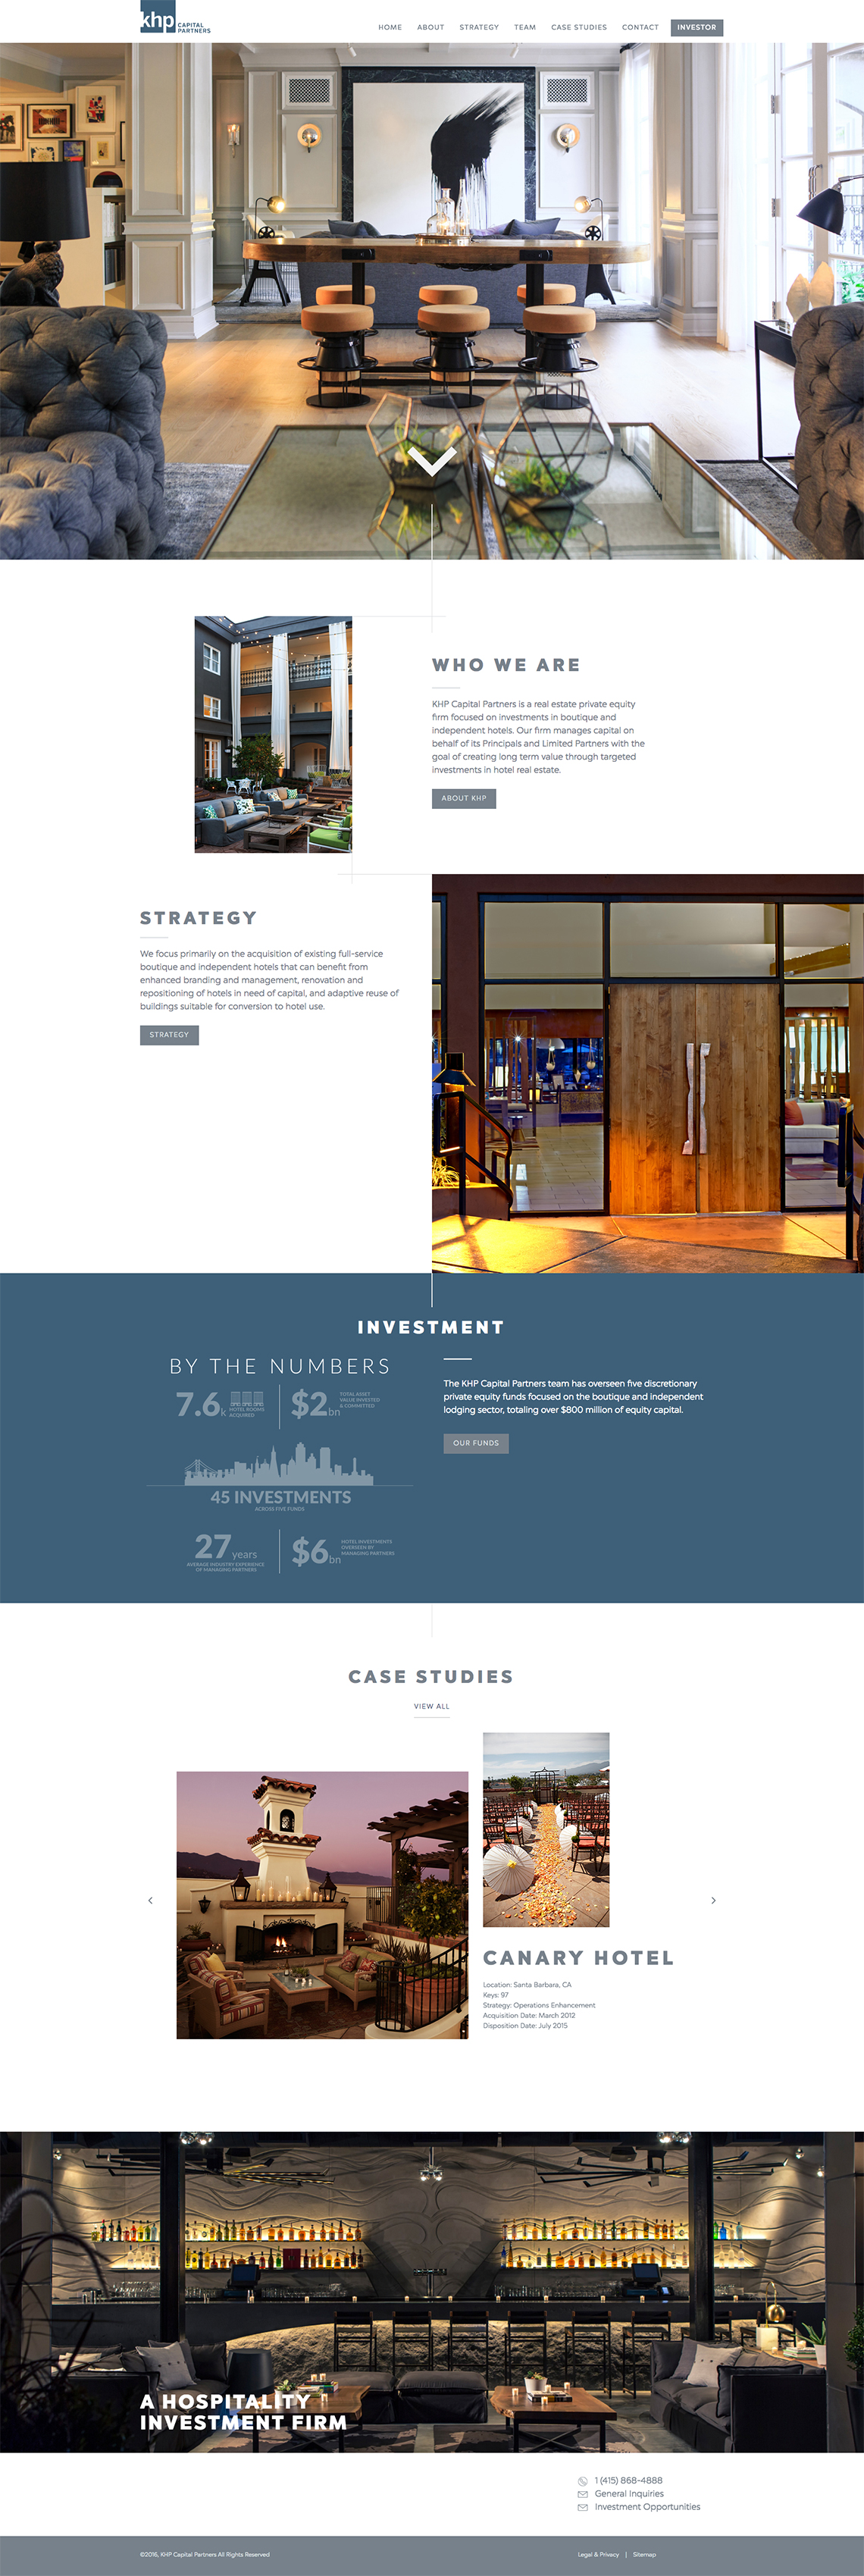 KHP Capital Partners CMS Web Design for Brand Identity